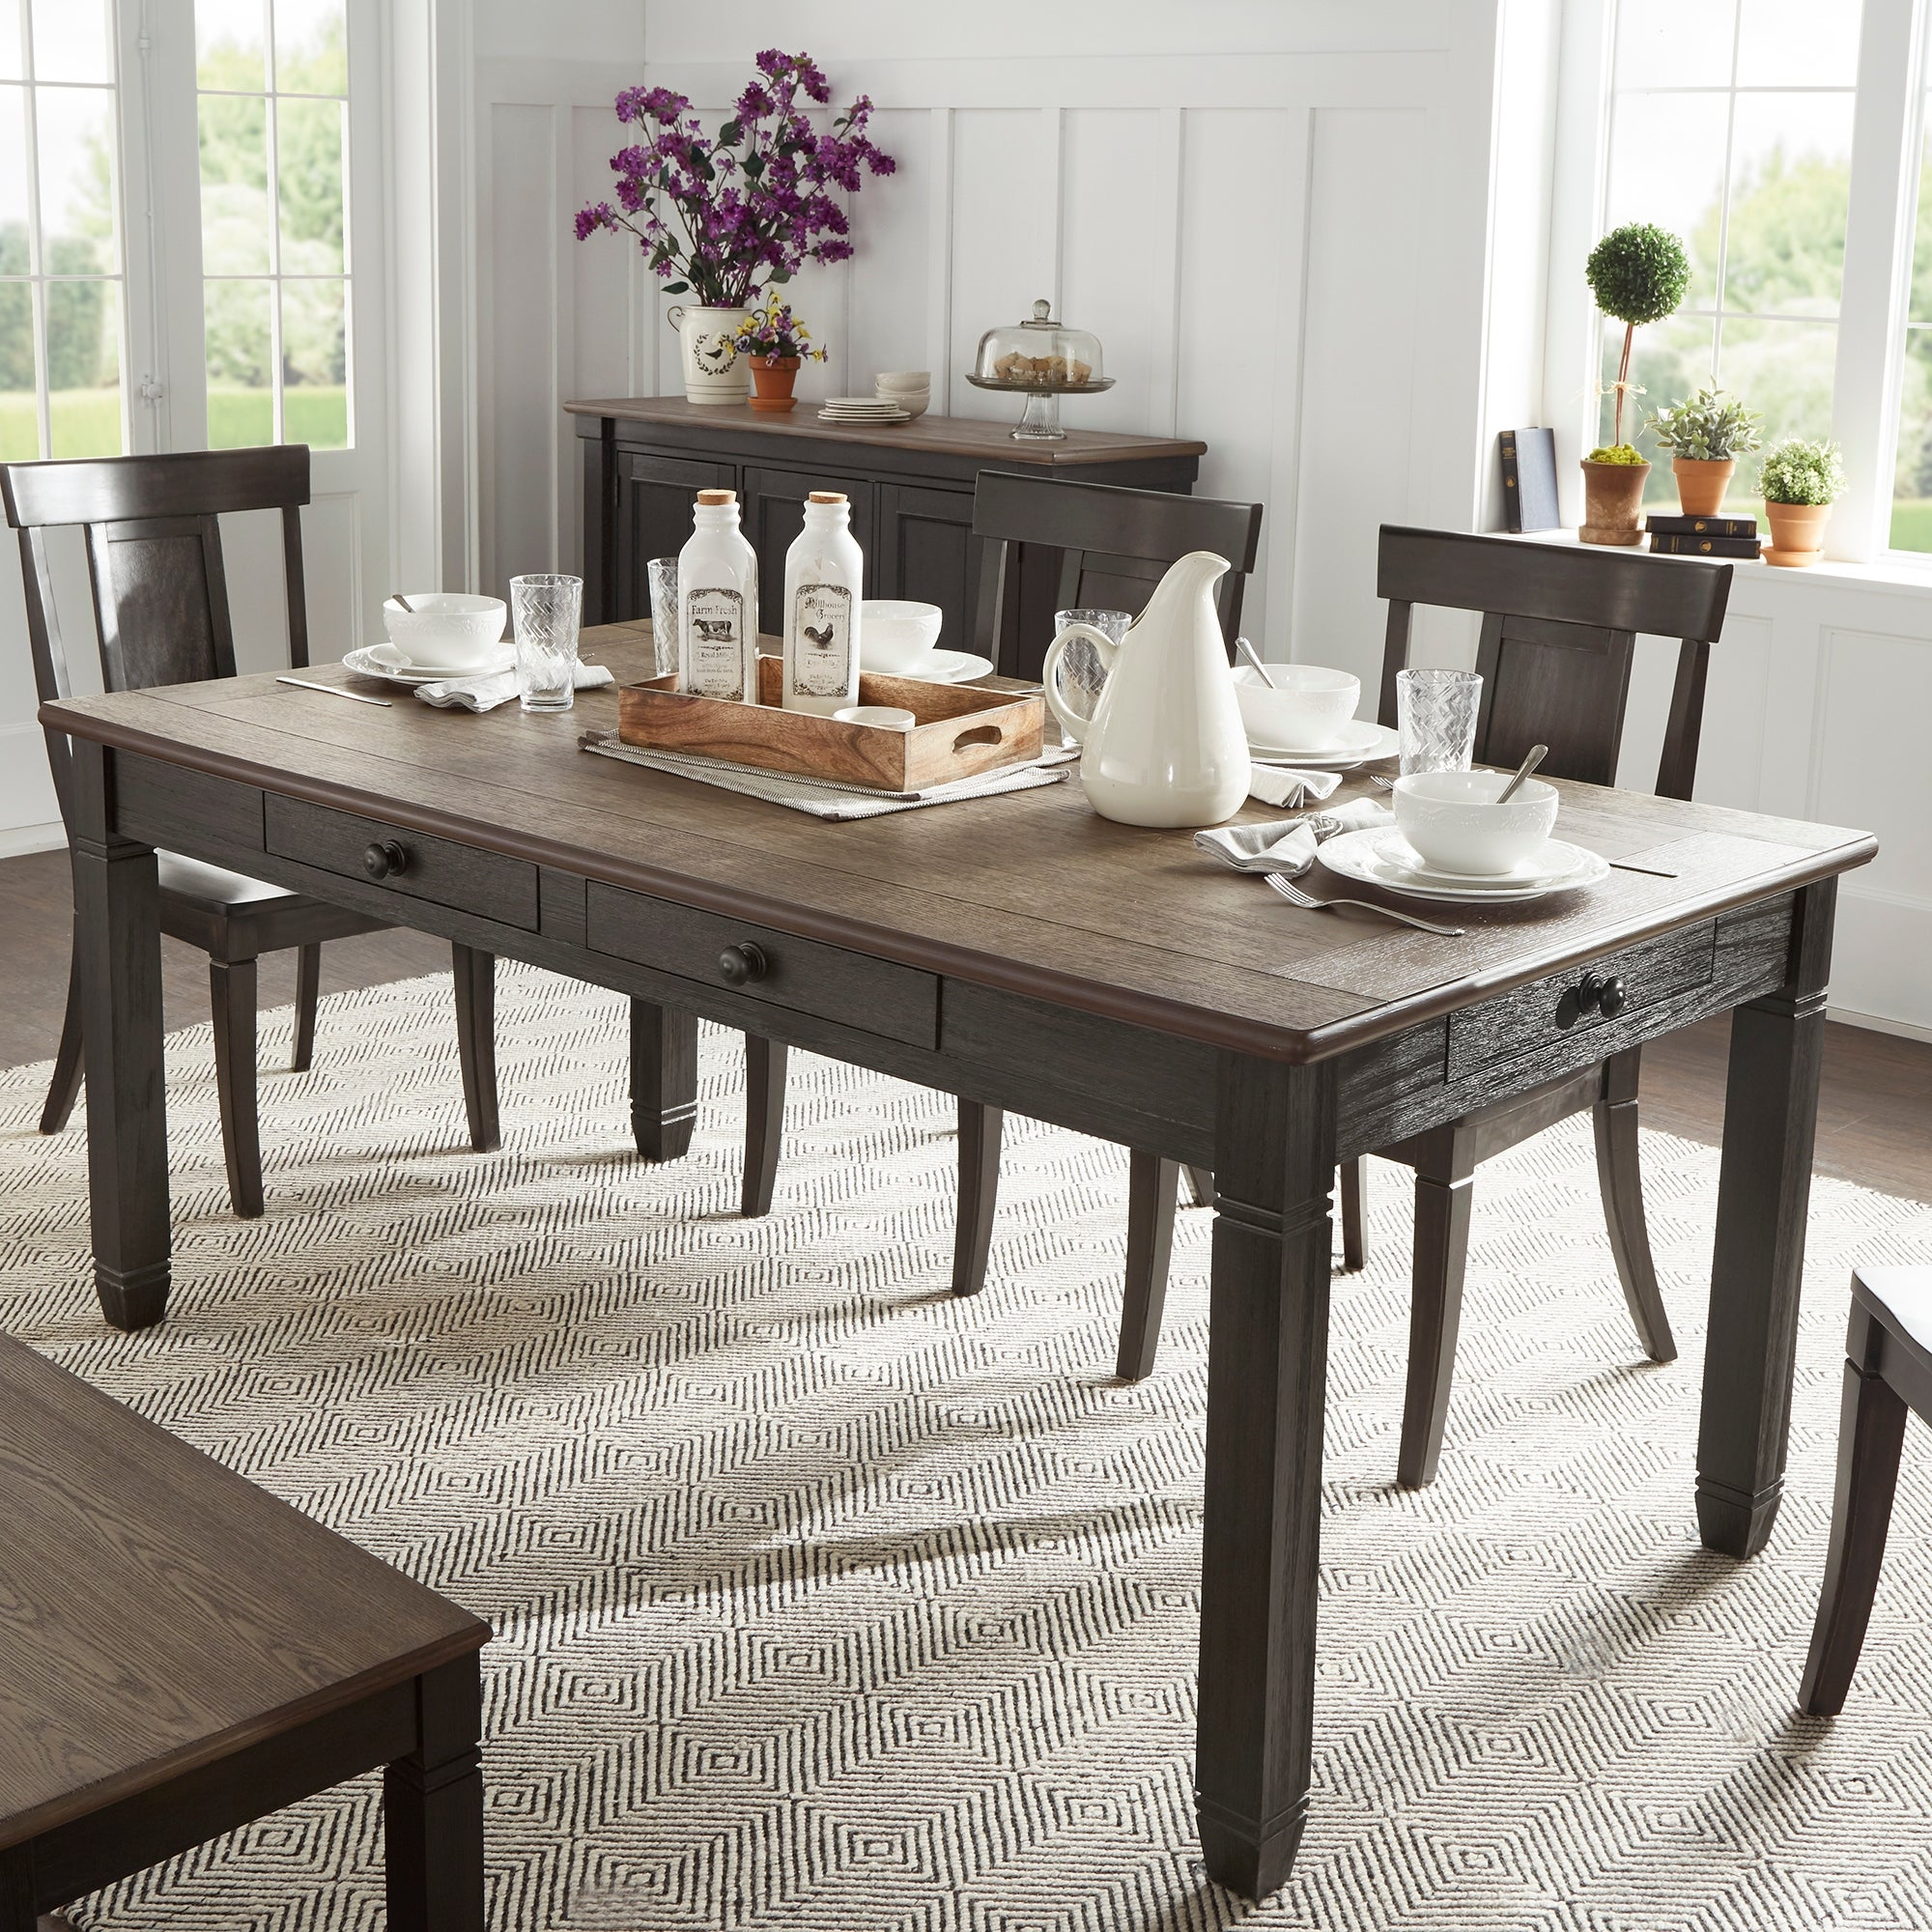 The Gray Barn Gamgee Grange Brown And Antique Finish Dining Table With 6 Drawers Overstock 28263492